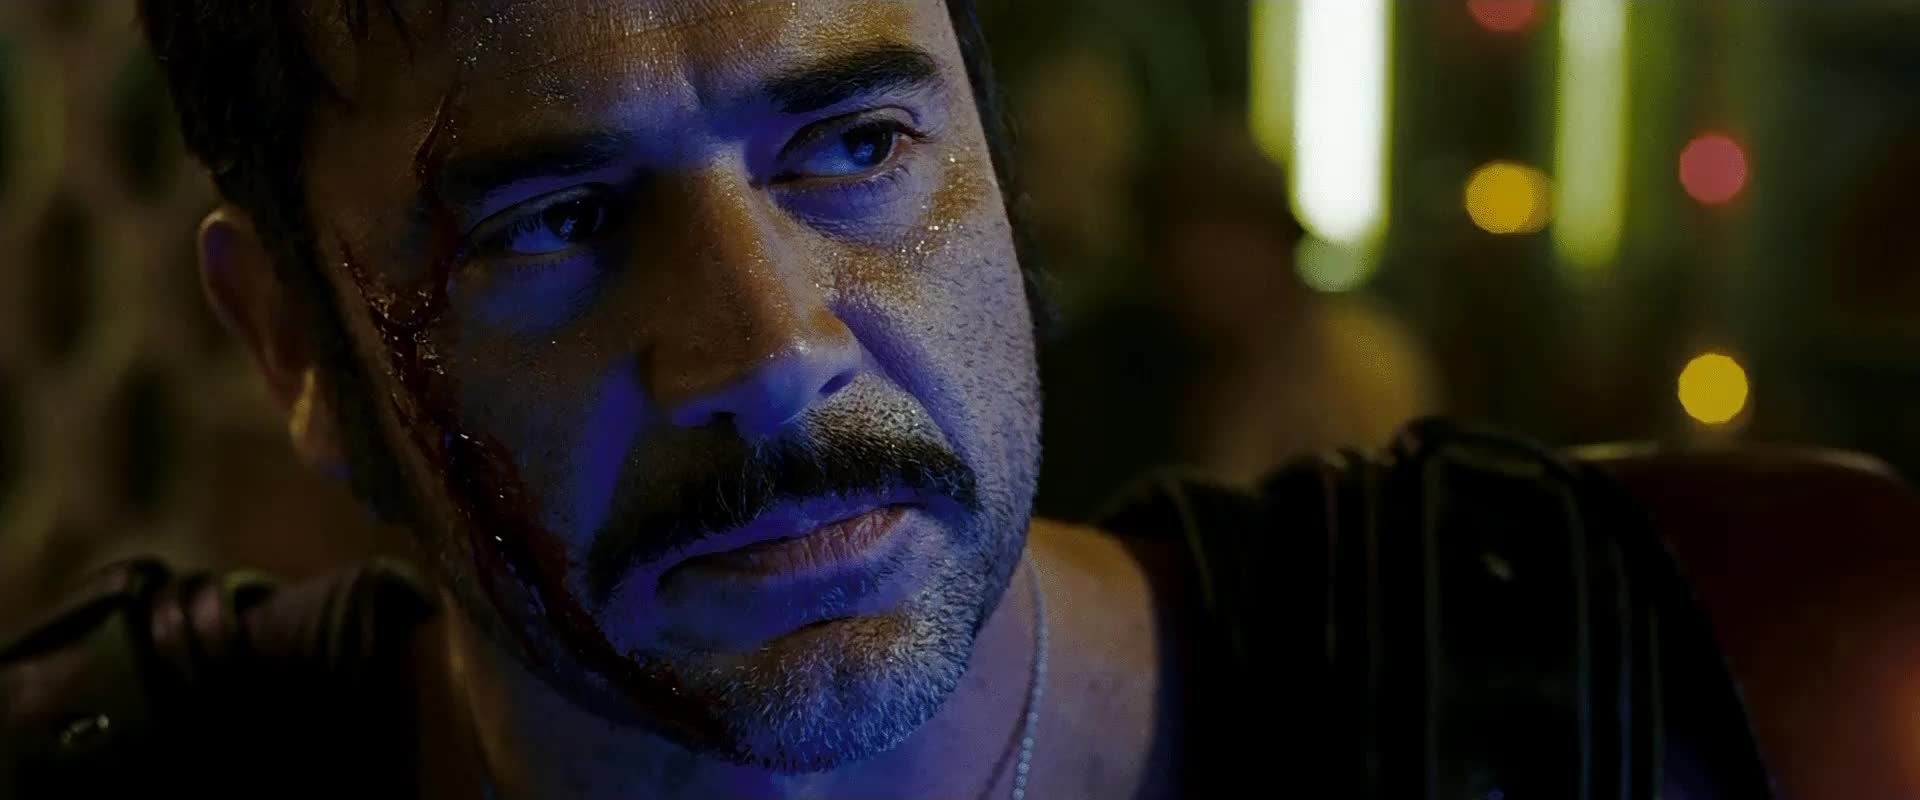 jeffrey dean morgan, watchmen, God help us all GIFs